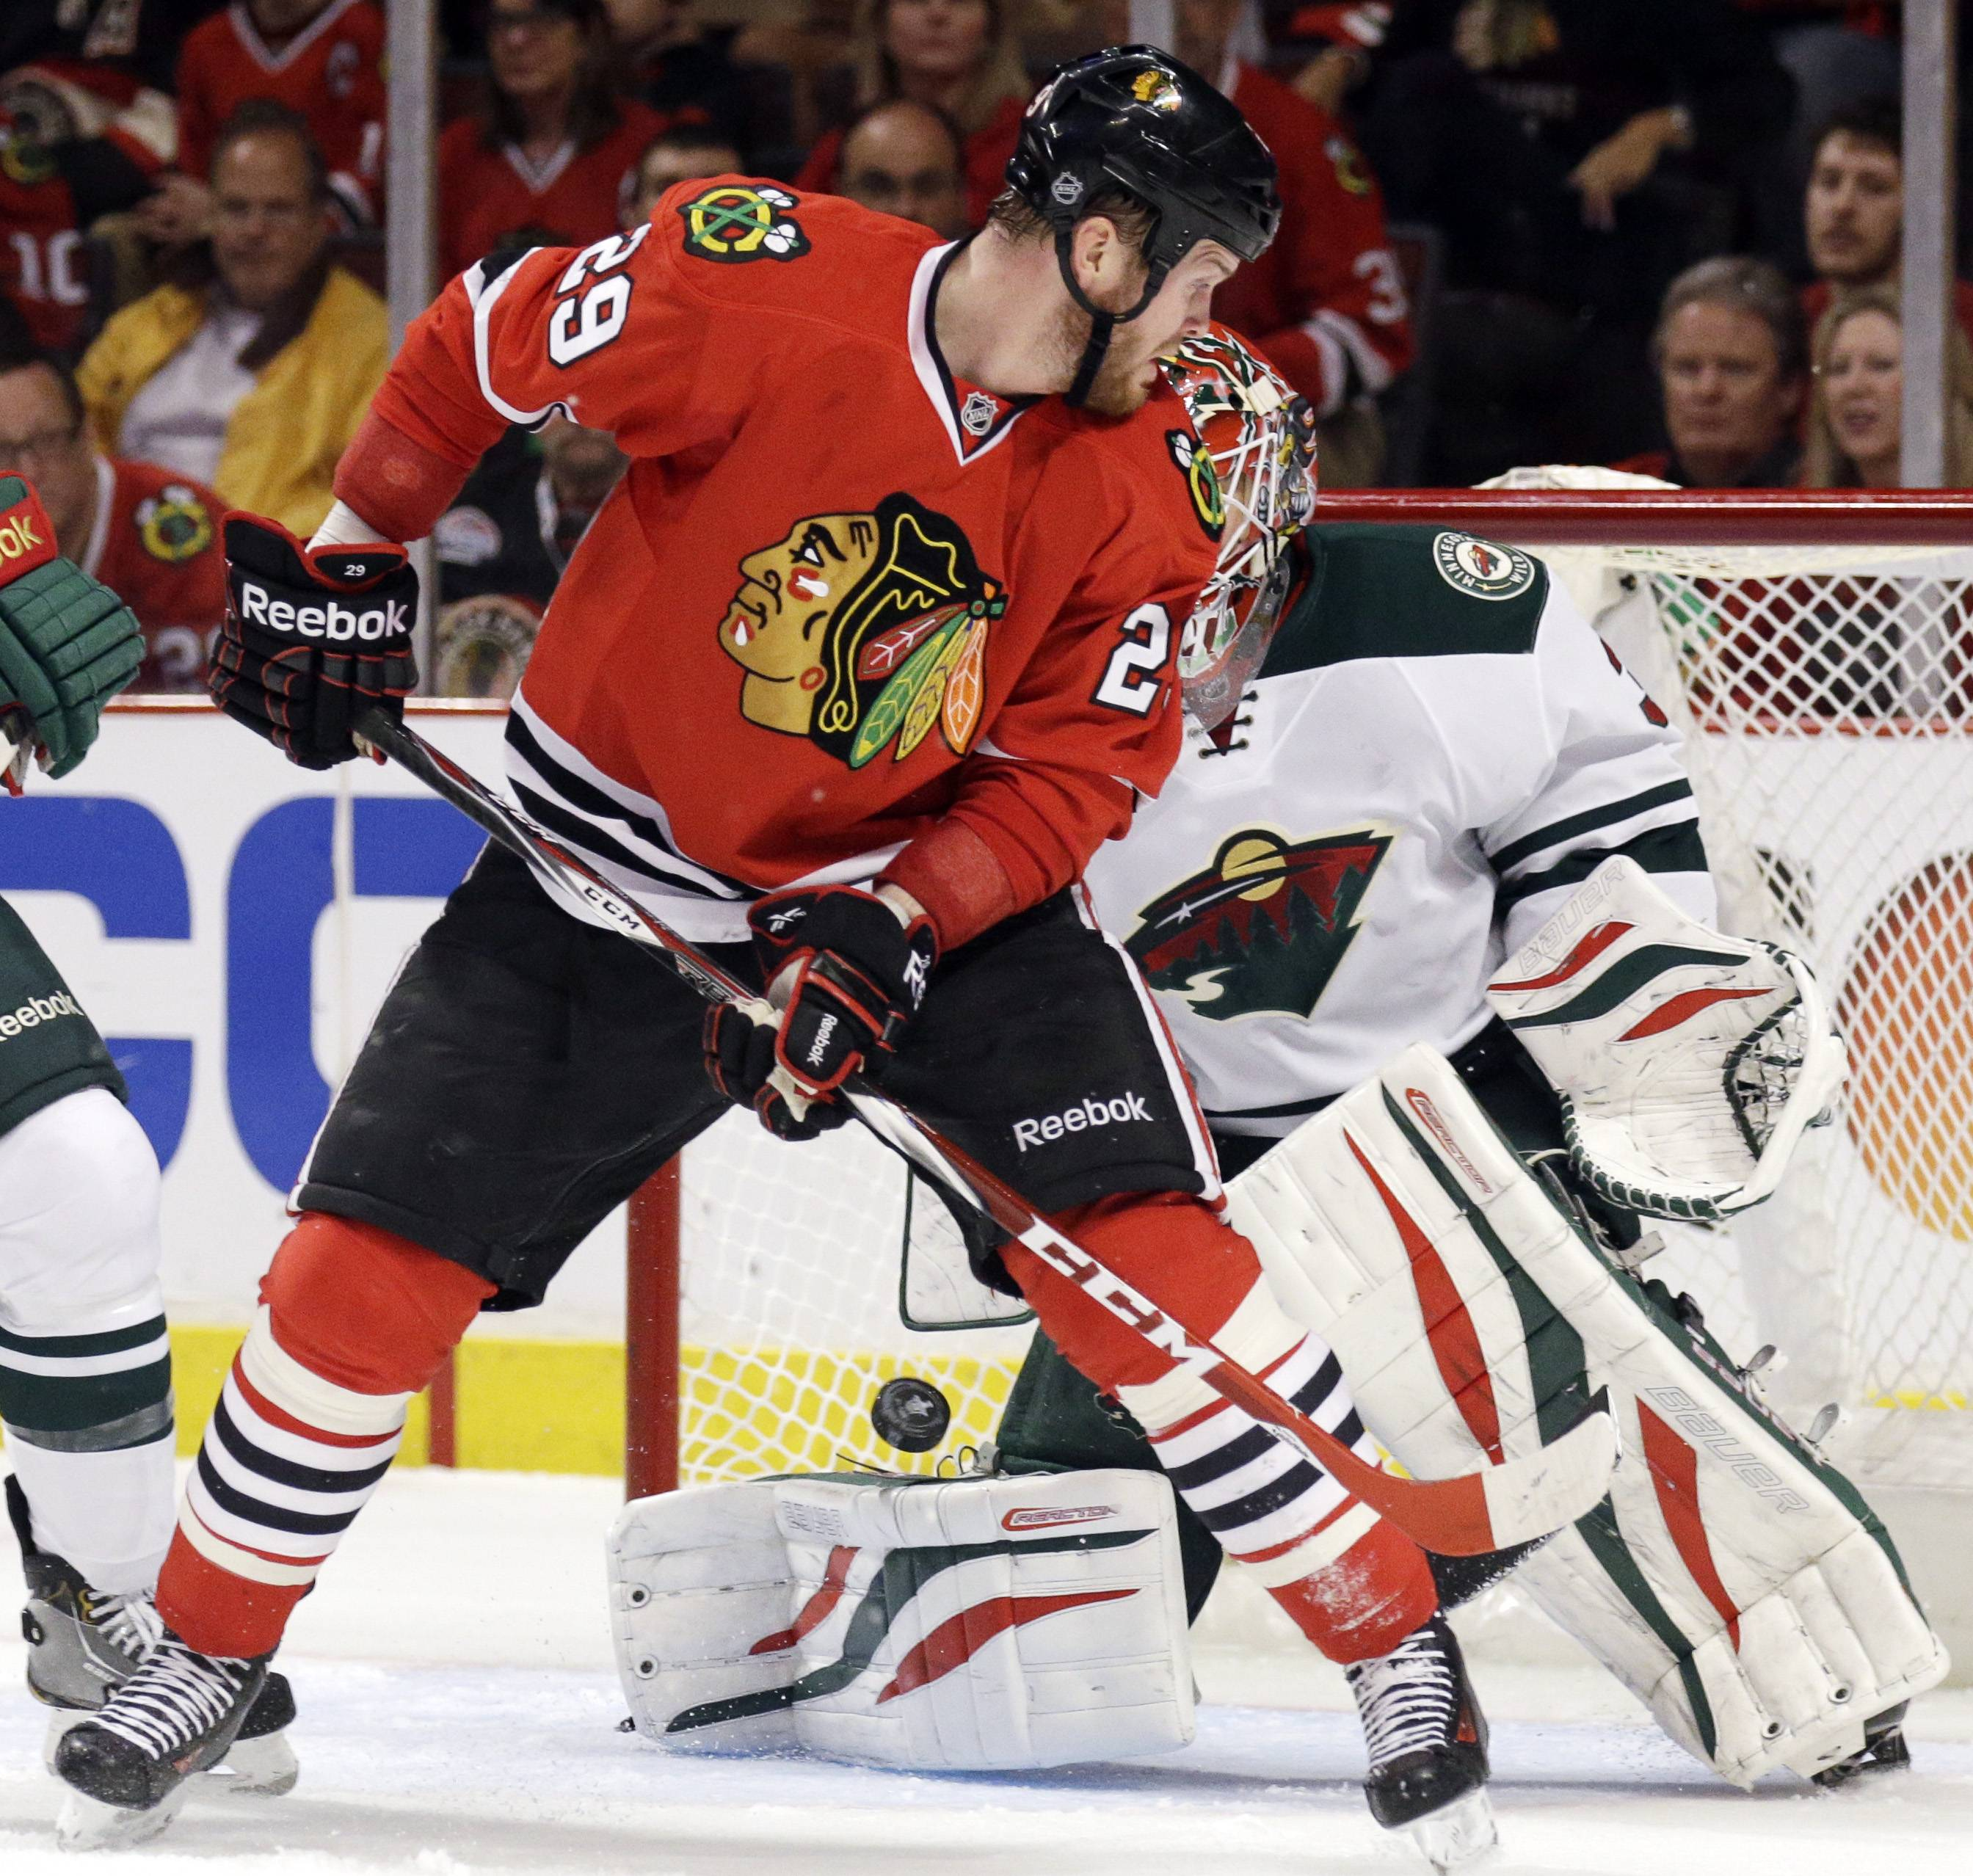 Chicago Blackhawks' Bryan Bickell (29) scores against Minnesota Wild goalie Ilya Bryzgalov (30) during the second period.